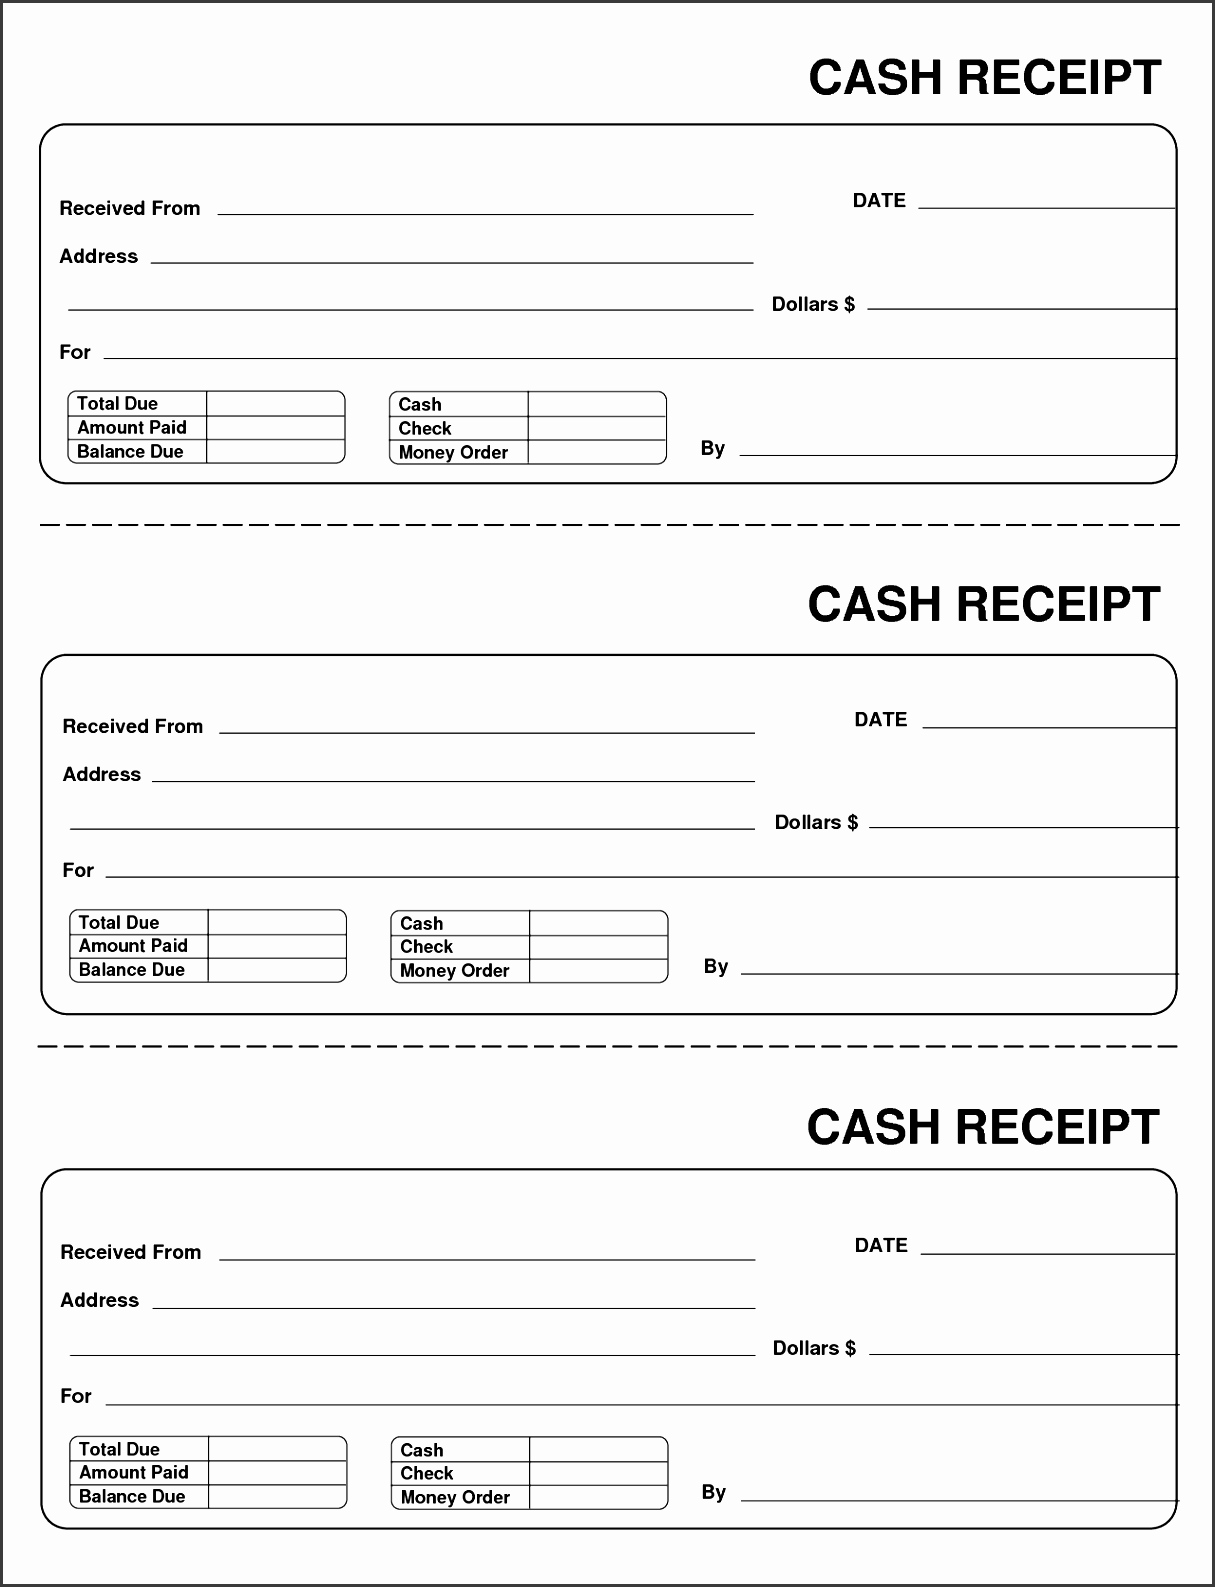 Free Receipt Book Technology Coach Cover Letter Mill Worker Sample Payment  Receipt Template Online Sktee New Payment Receipt Book Format Of Admission  Form ...  Payment Receipt Book